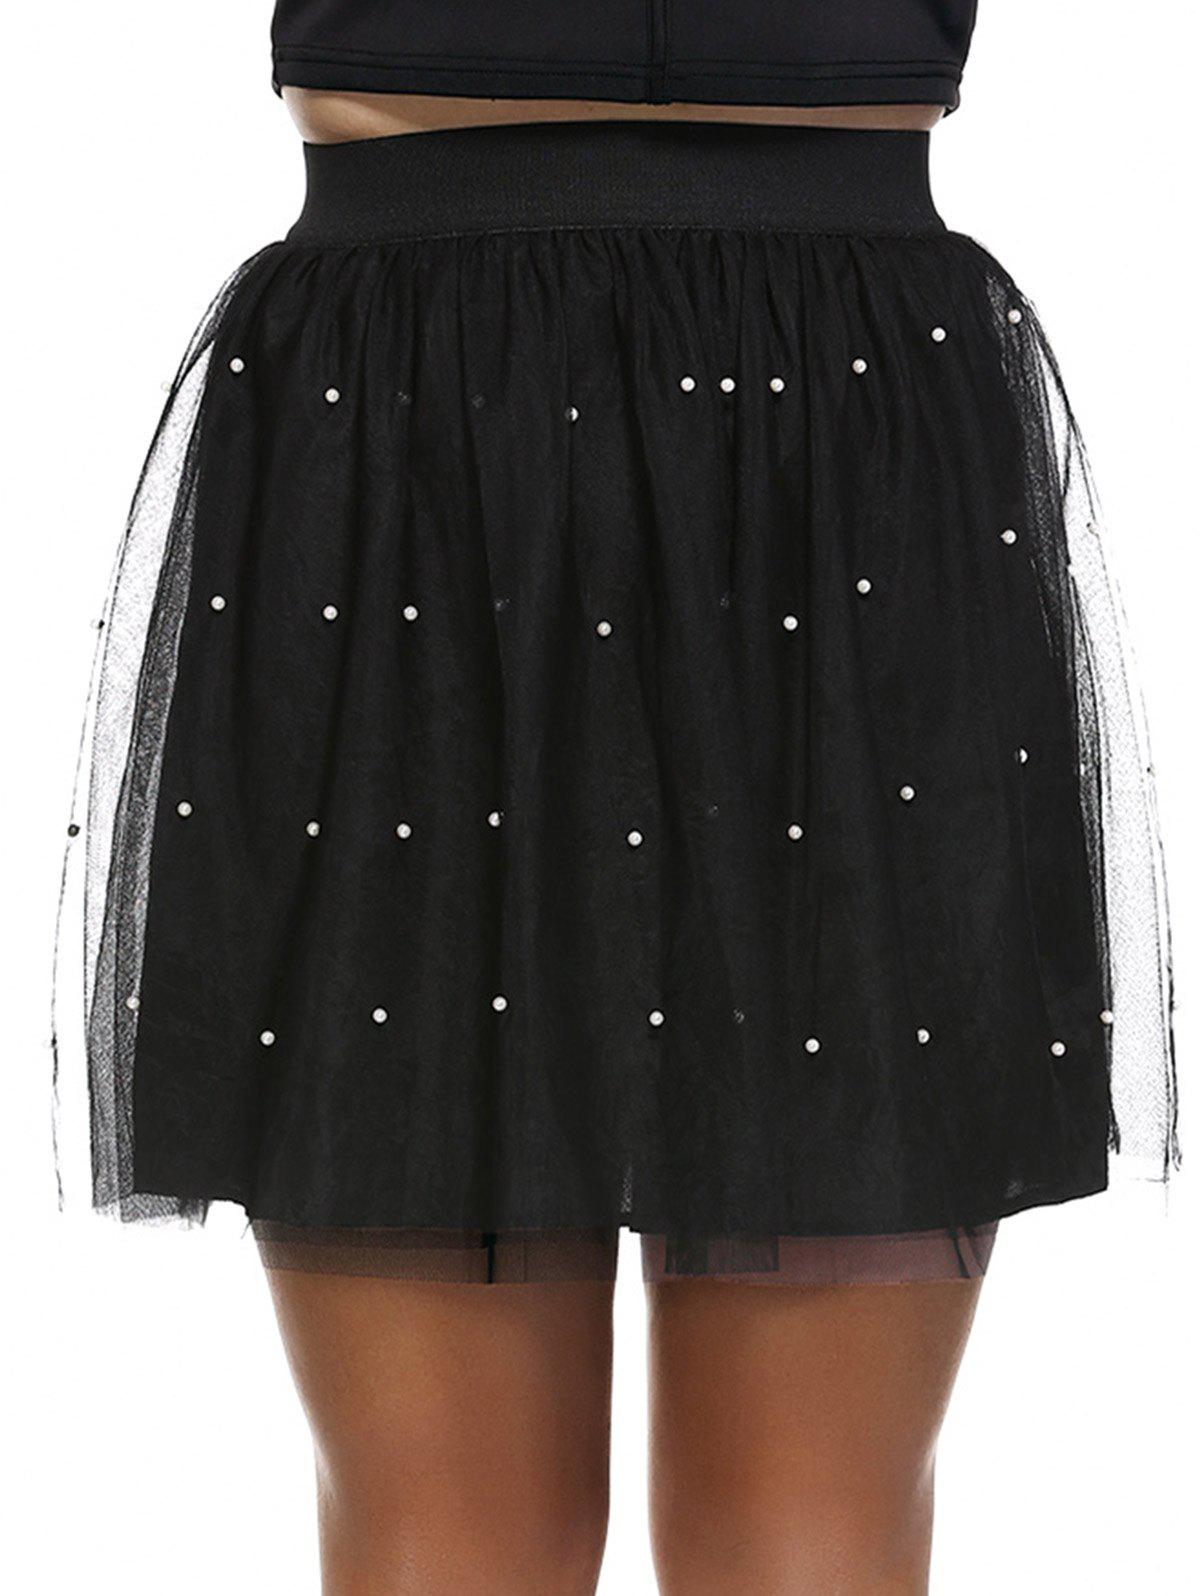 Fashionable Plus Size Pleated Beaded Women's Skirt - BLACK 4XL